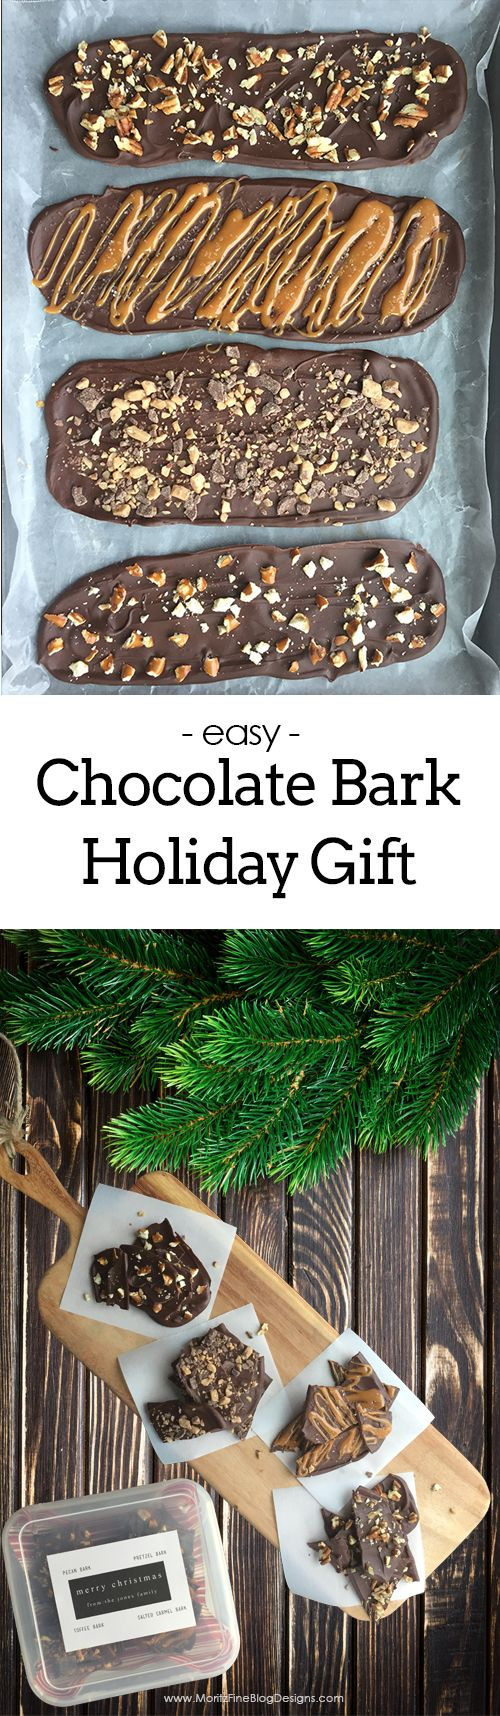 Chocolate Bark Holiday Gift Idea via @moritzdesigns